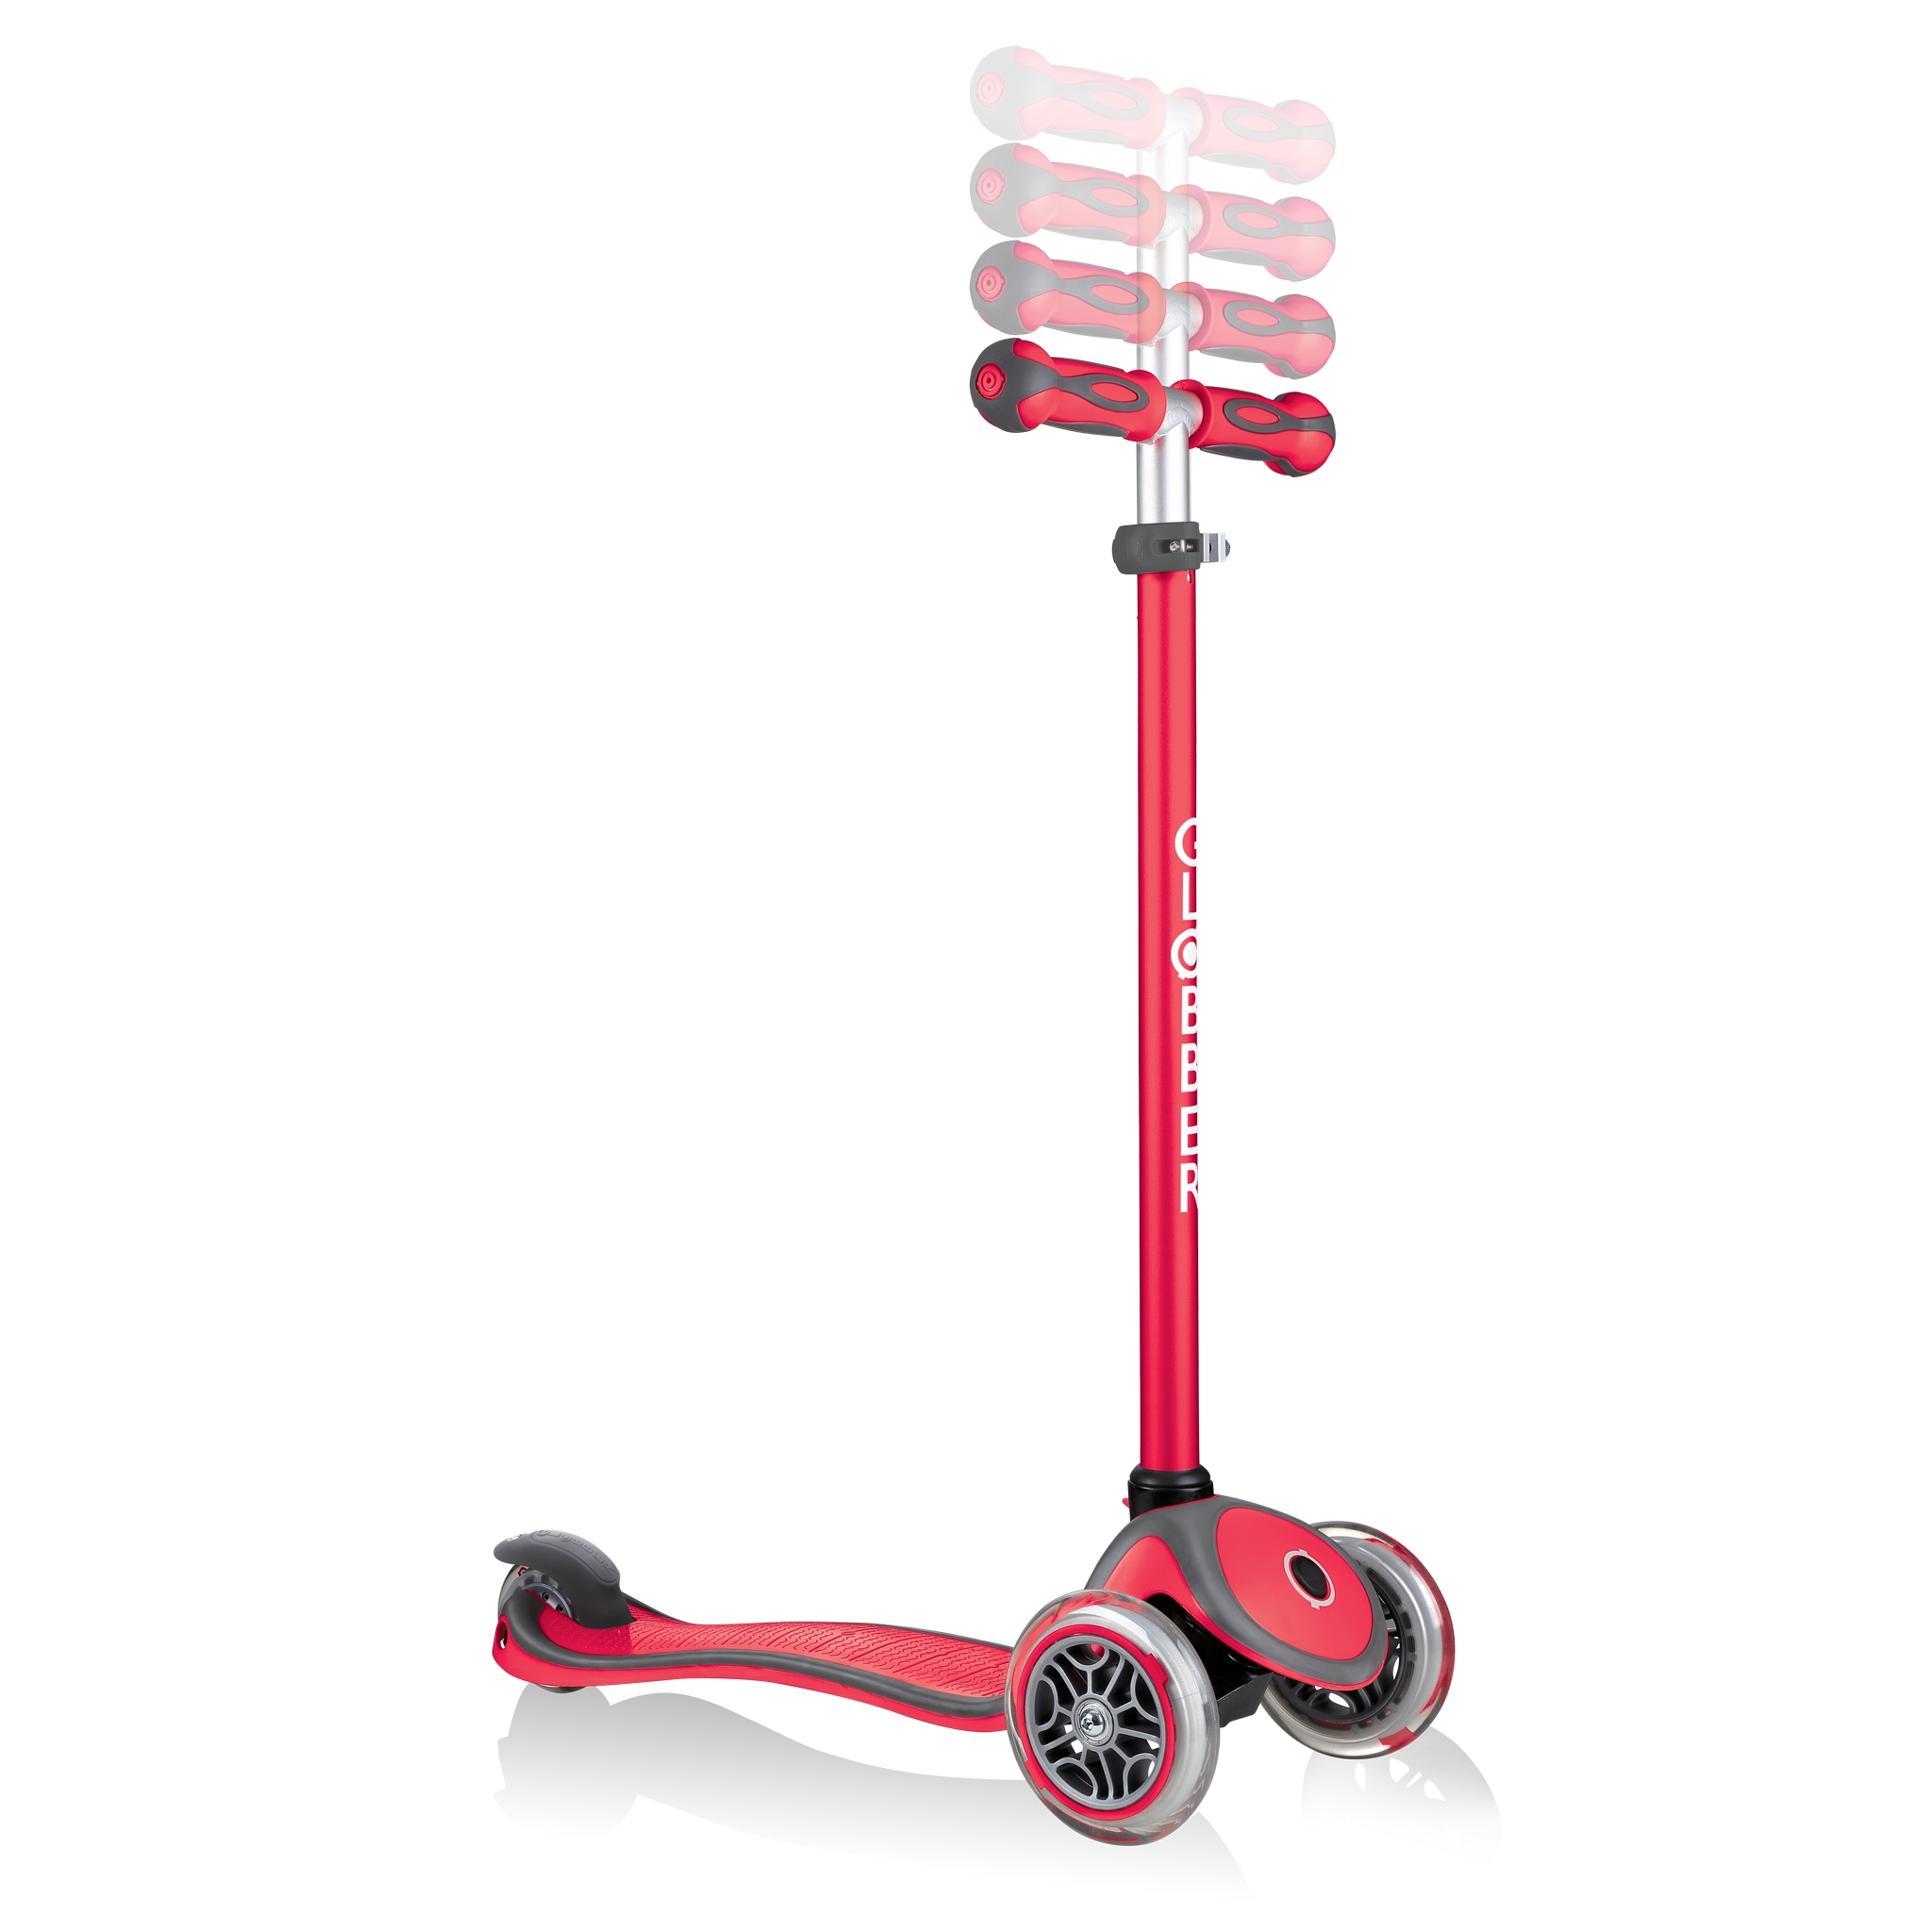 GO-UP-COMFORT-PLAY-scooter-with-seat-and-adjustable-T-bar_new-red 5